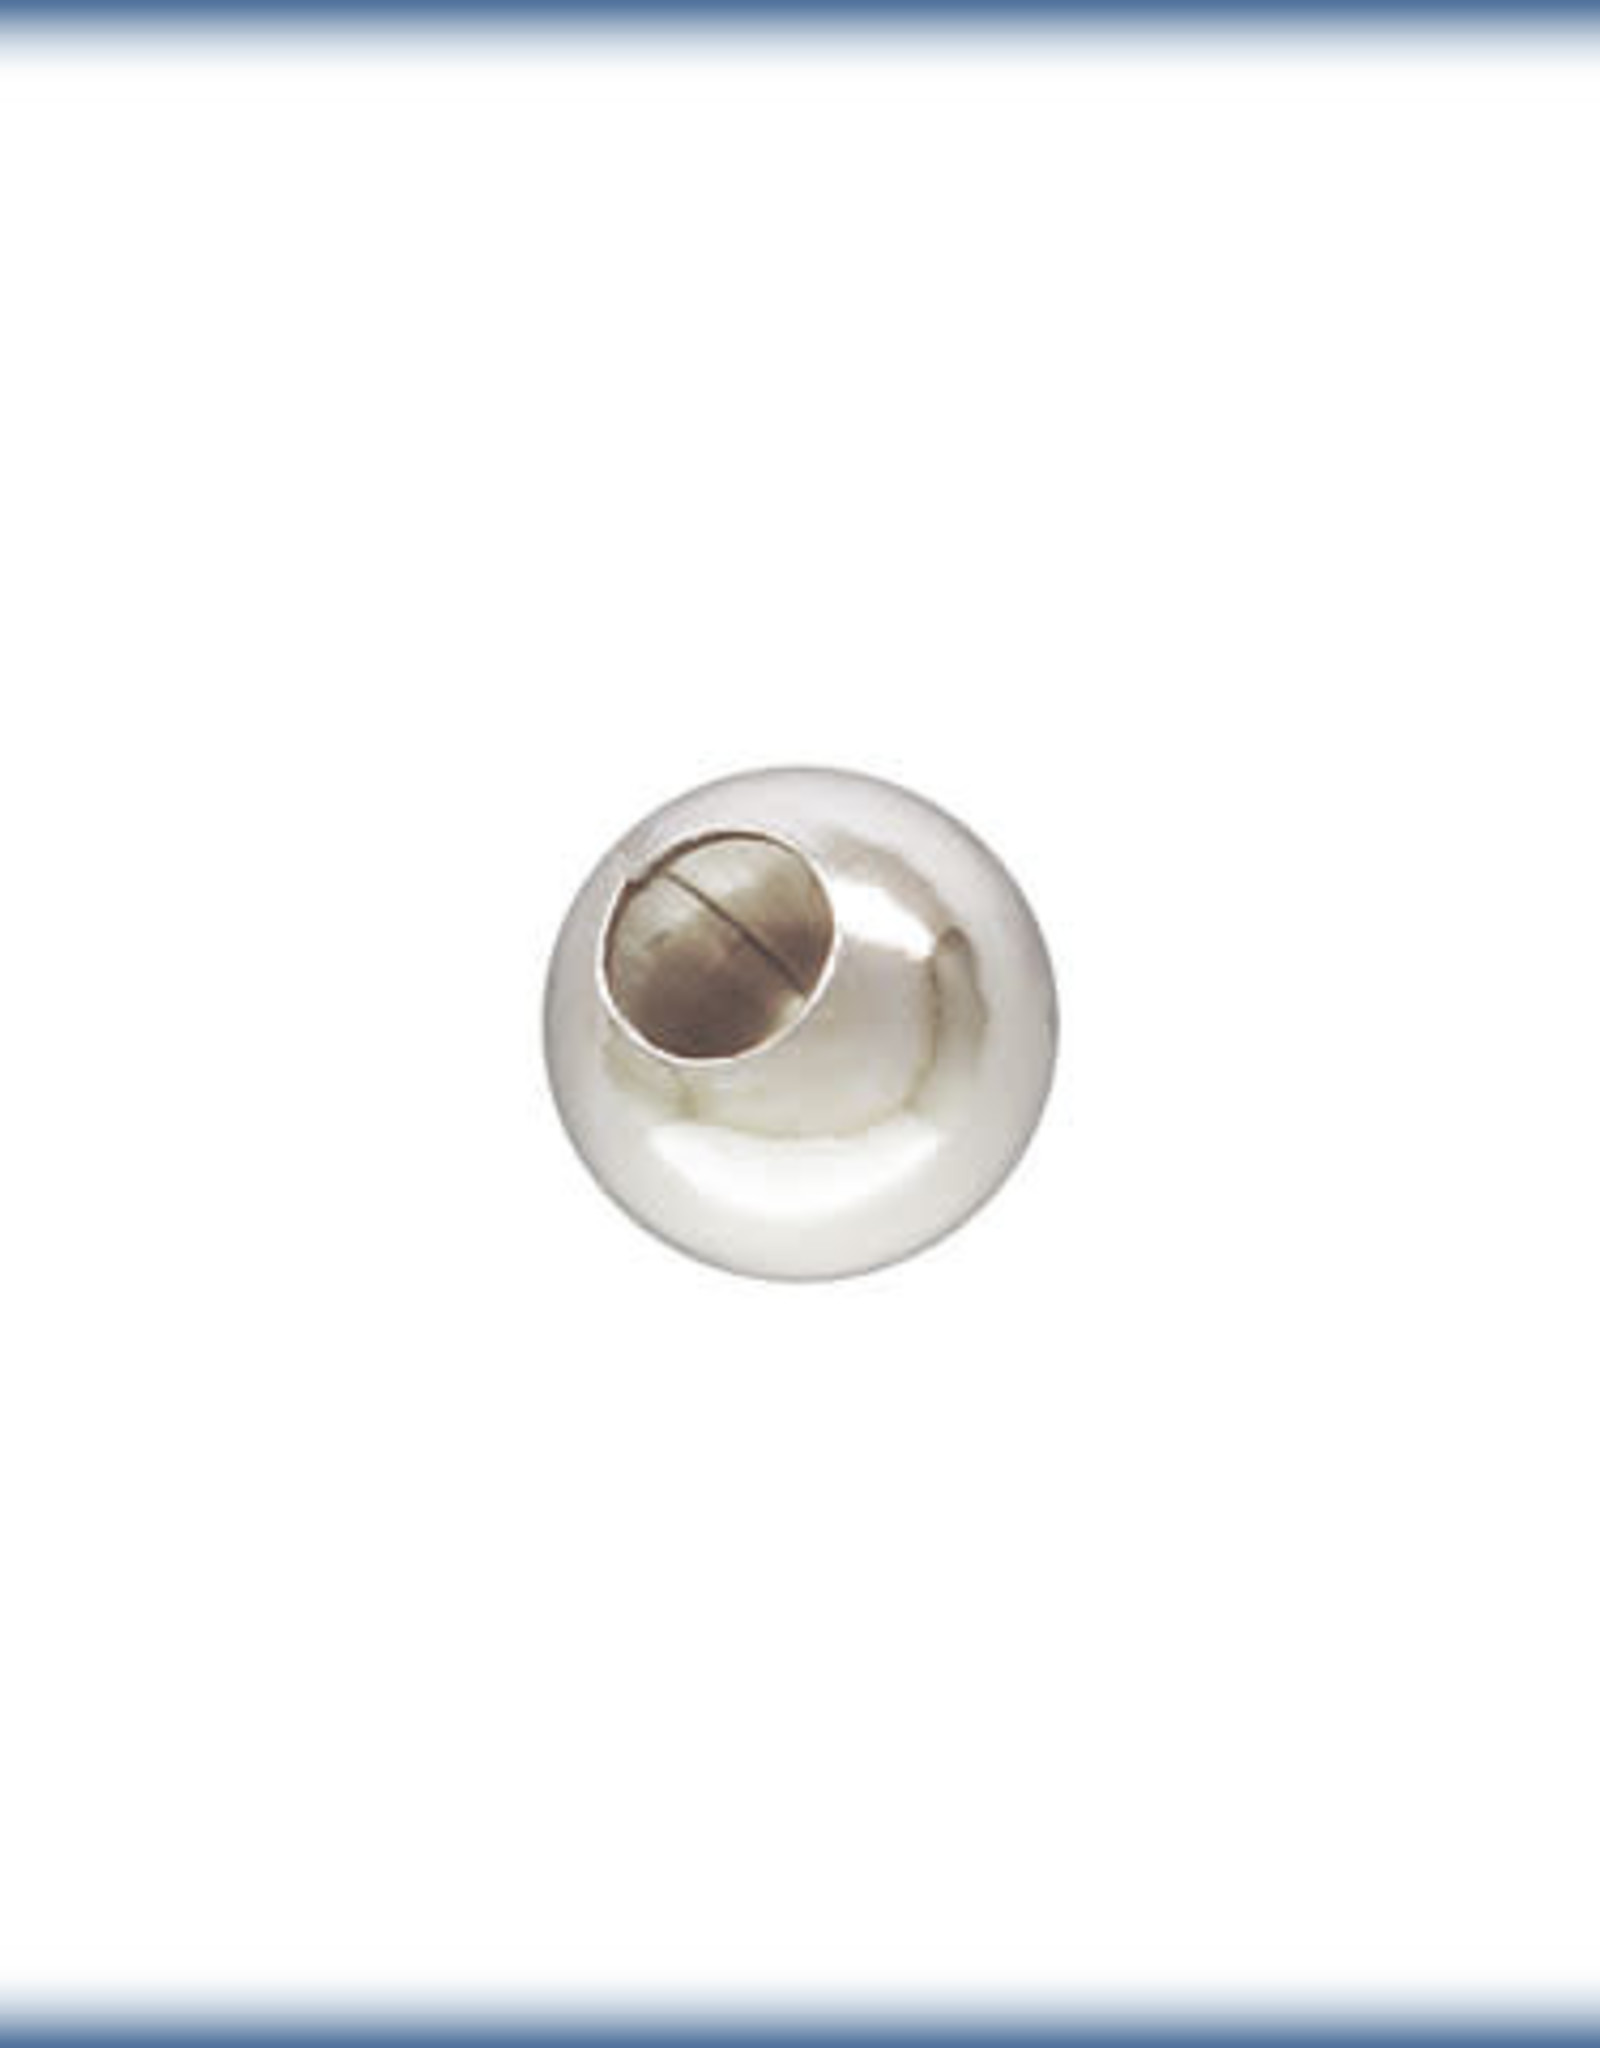 4mm Round Bead Sterling Silver Qty 12